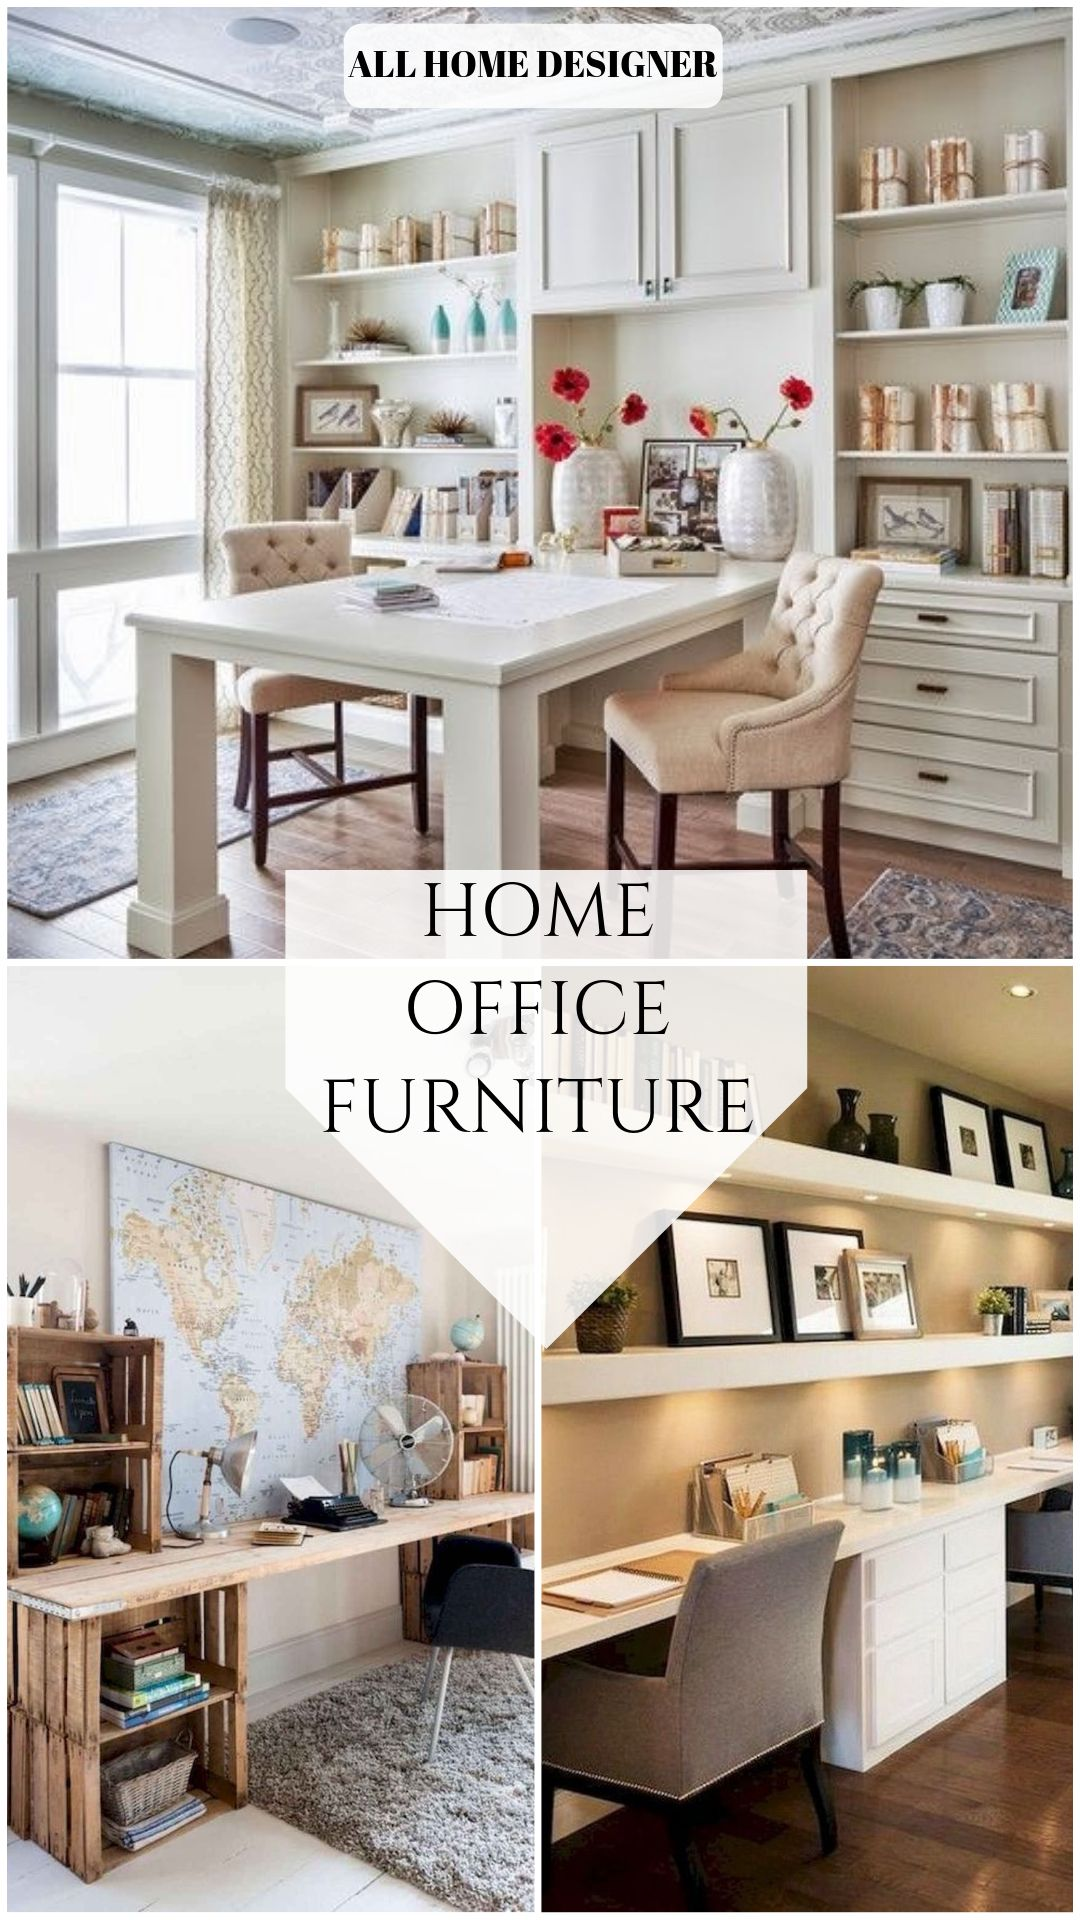 Home Office Furniture Ideas Home Office Furniture Home Home Office